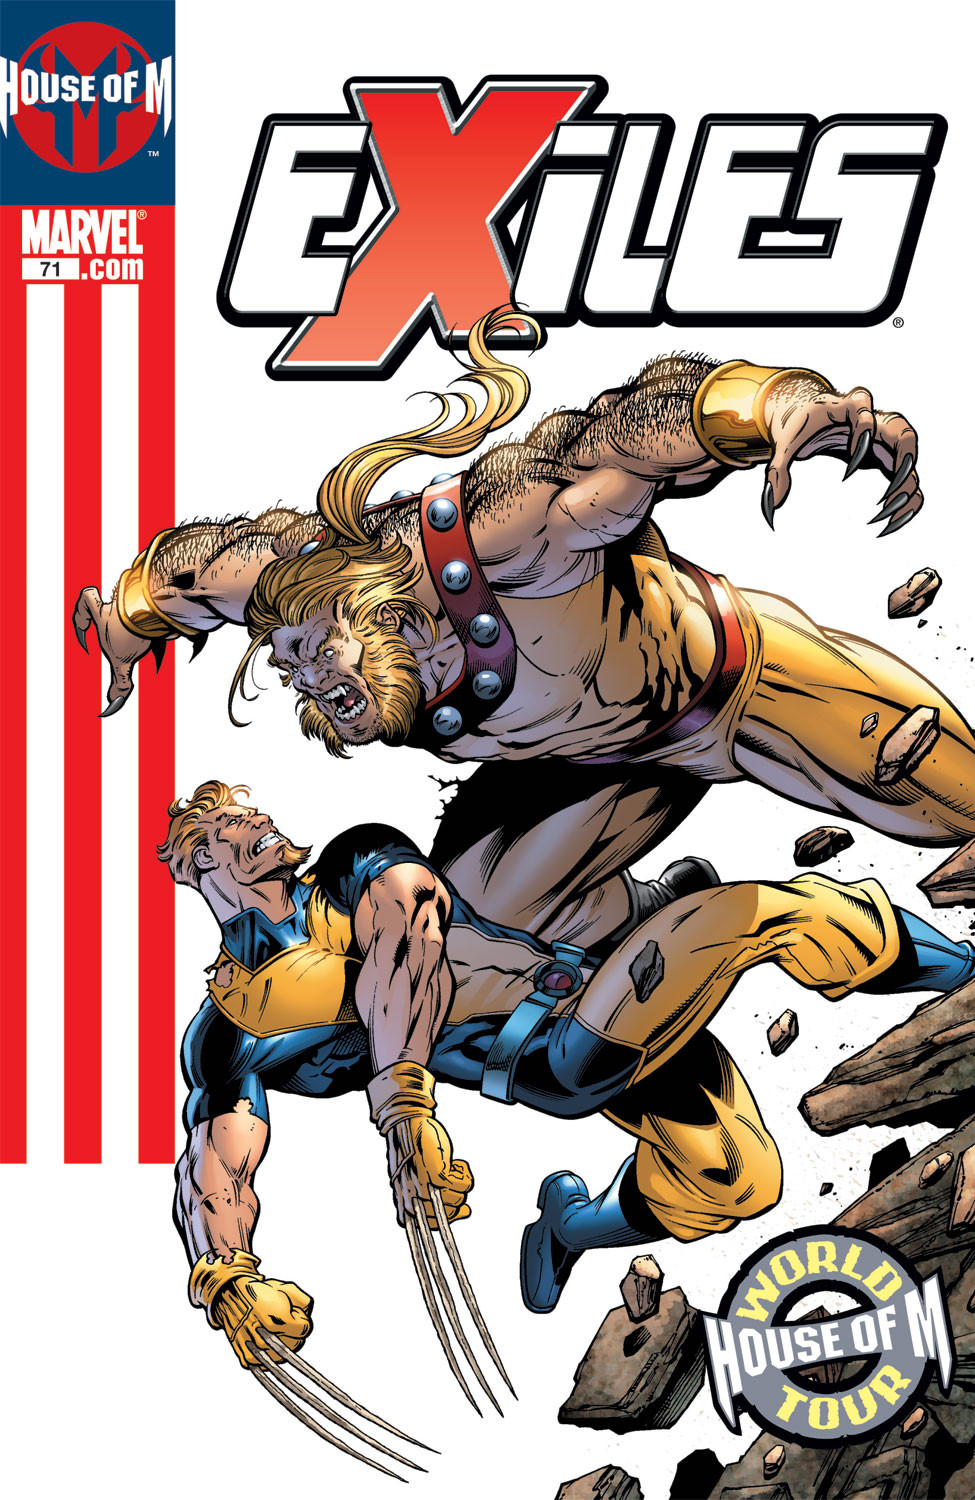 Exiles Vol 1 71 - Marvel Datab...